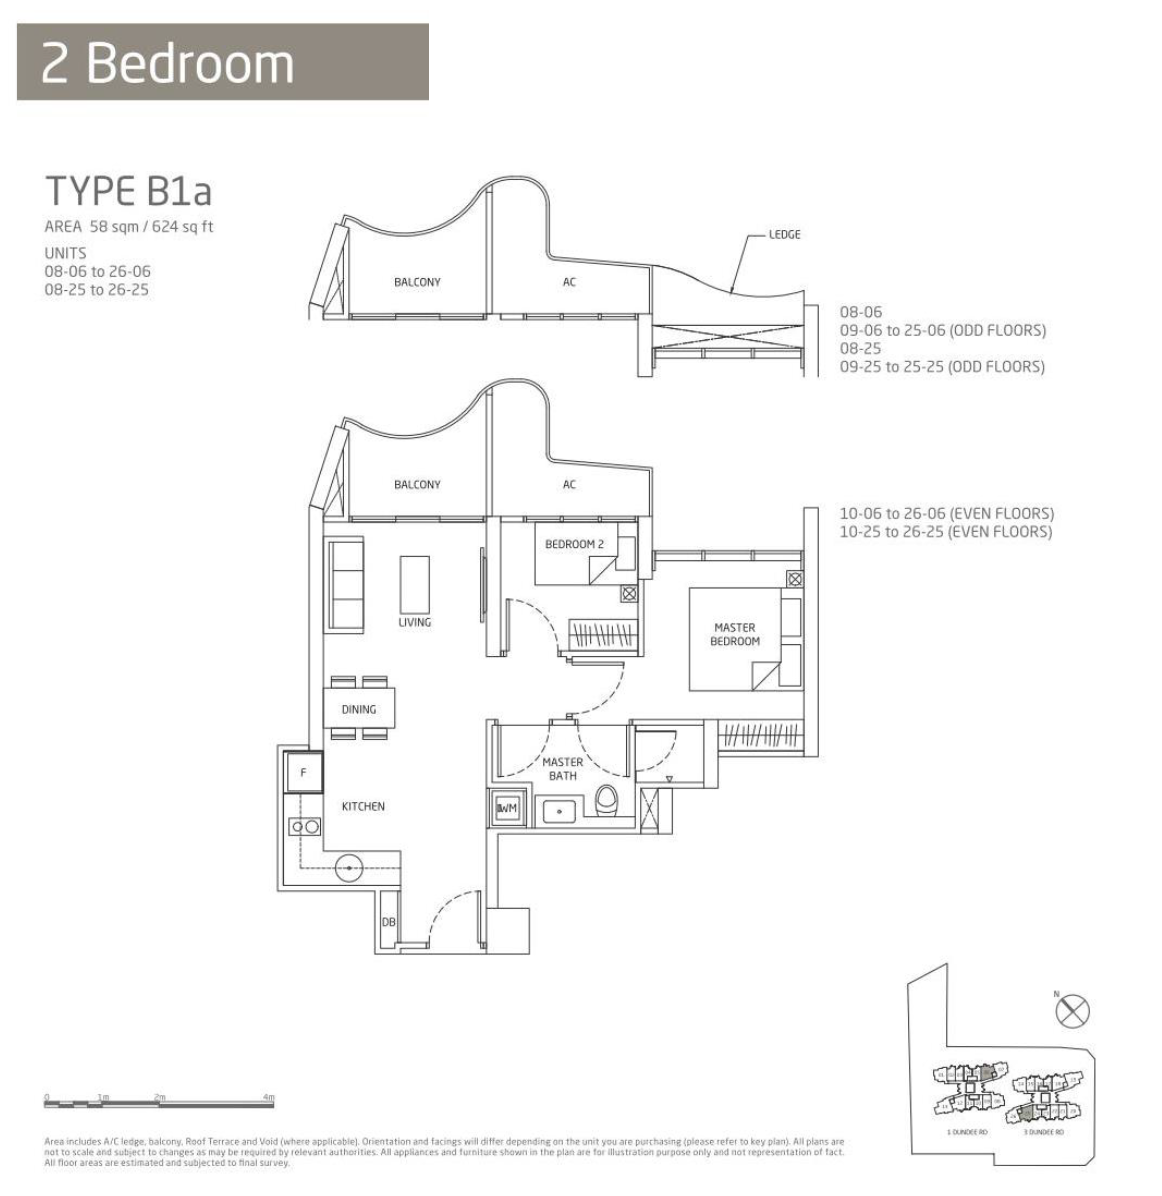 Queens Peak 2 bedroom floor plan type B1a queens peak floor plan showflat hotline 61008935 showroom ke70 wiring diagram pdf at soozxer.org